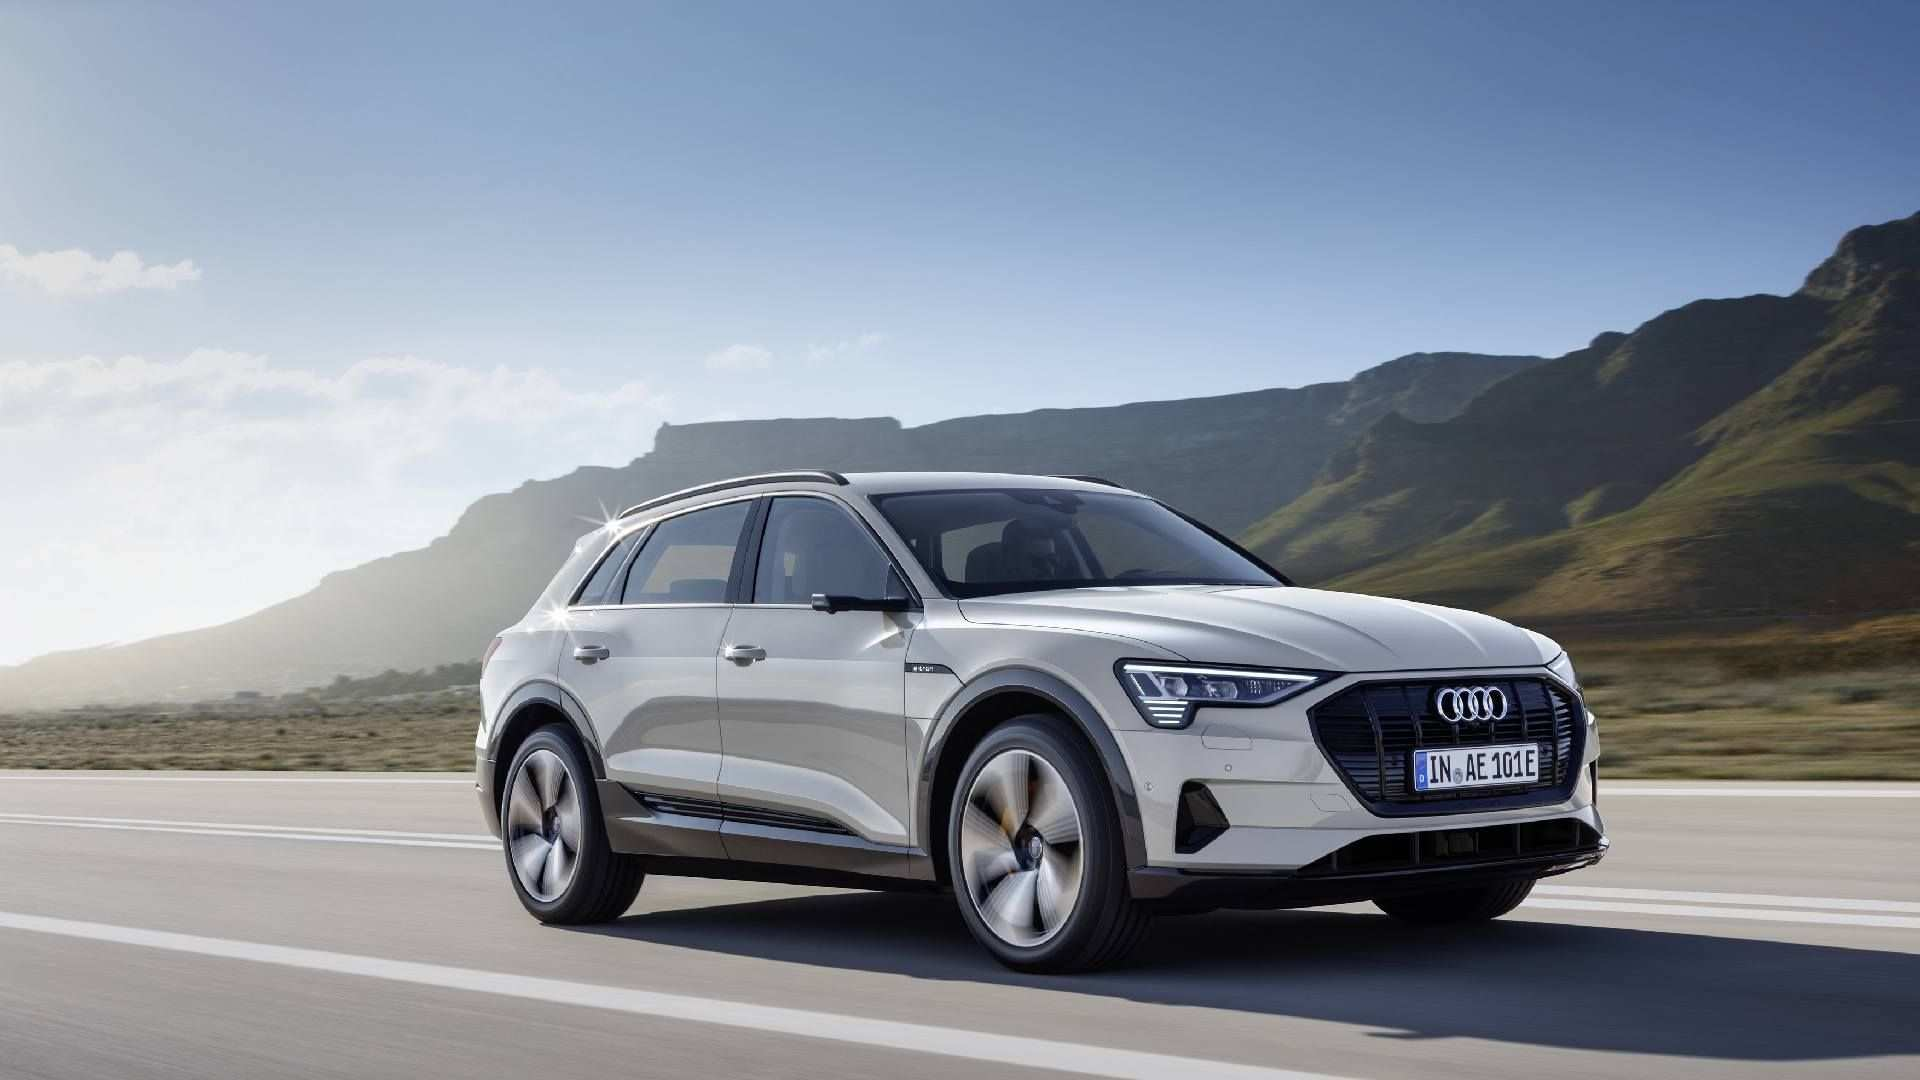 87 Gallery of Best Audi Q5 2019 Release Date Release Date And Specs Performance and New Engine with Best Audi Q5 2019 Release Date Release Date And Specs